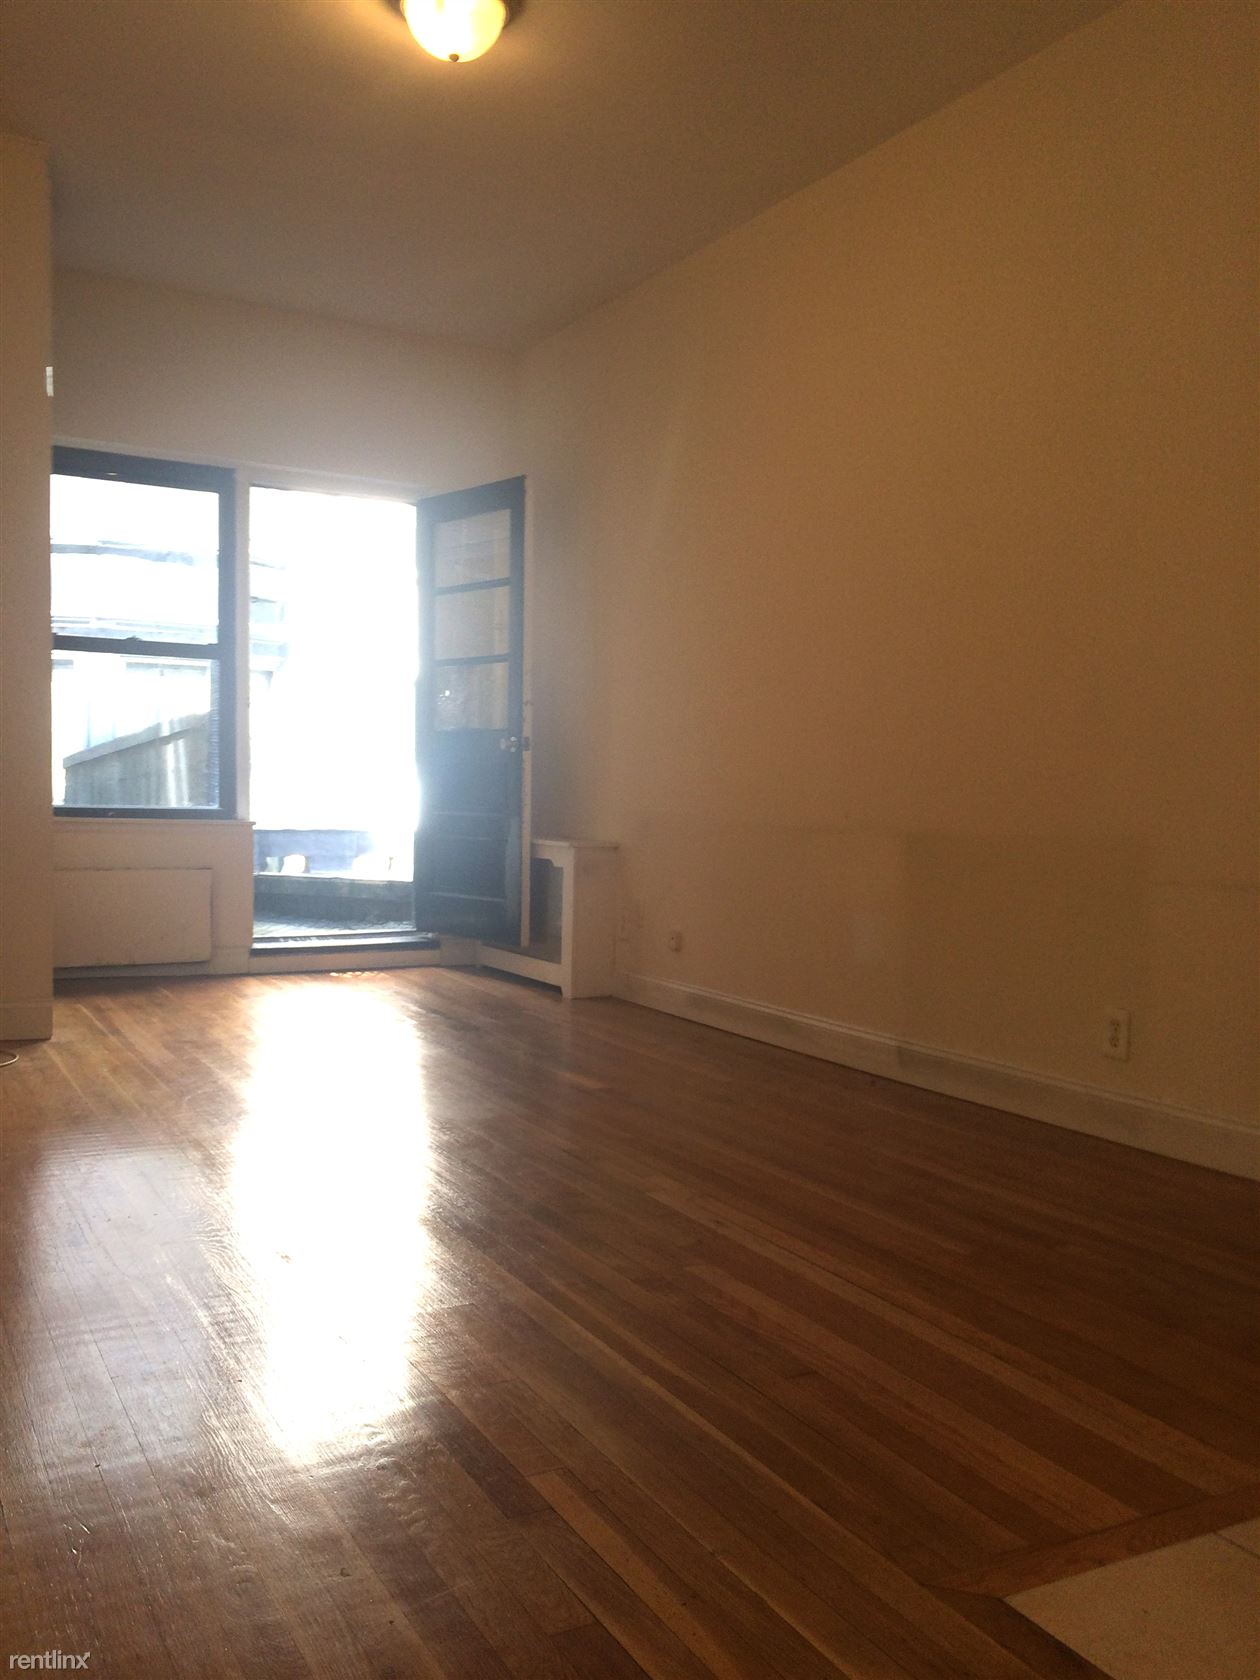 1 bedroom at 255 w 75th st new york ny whose your landlord for 1250 broadway 30th floor new york ny 10001